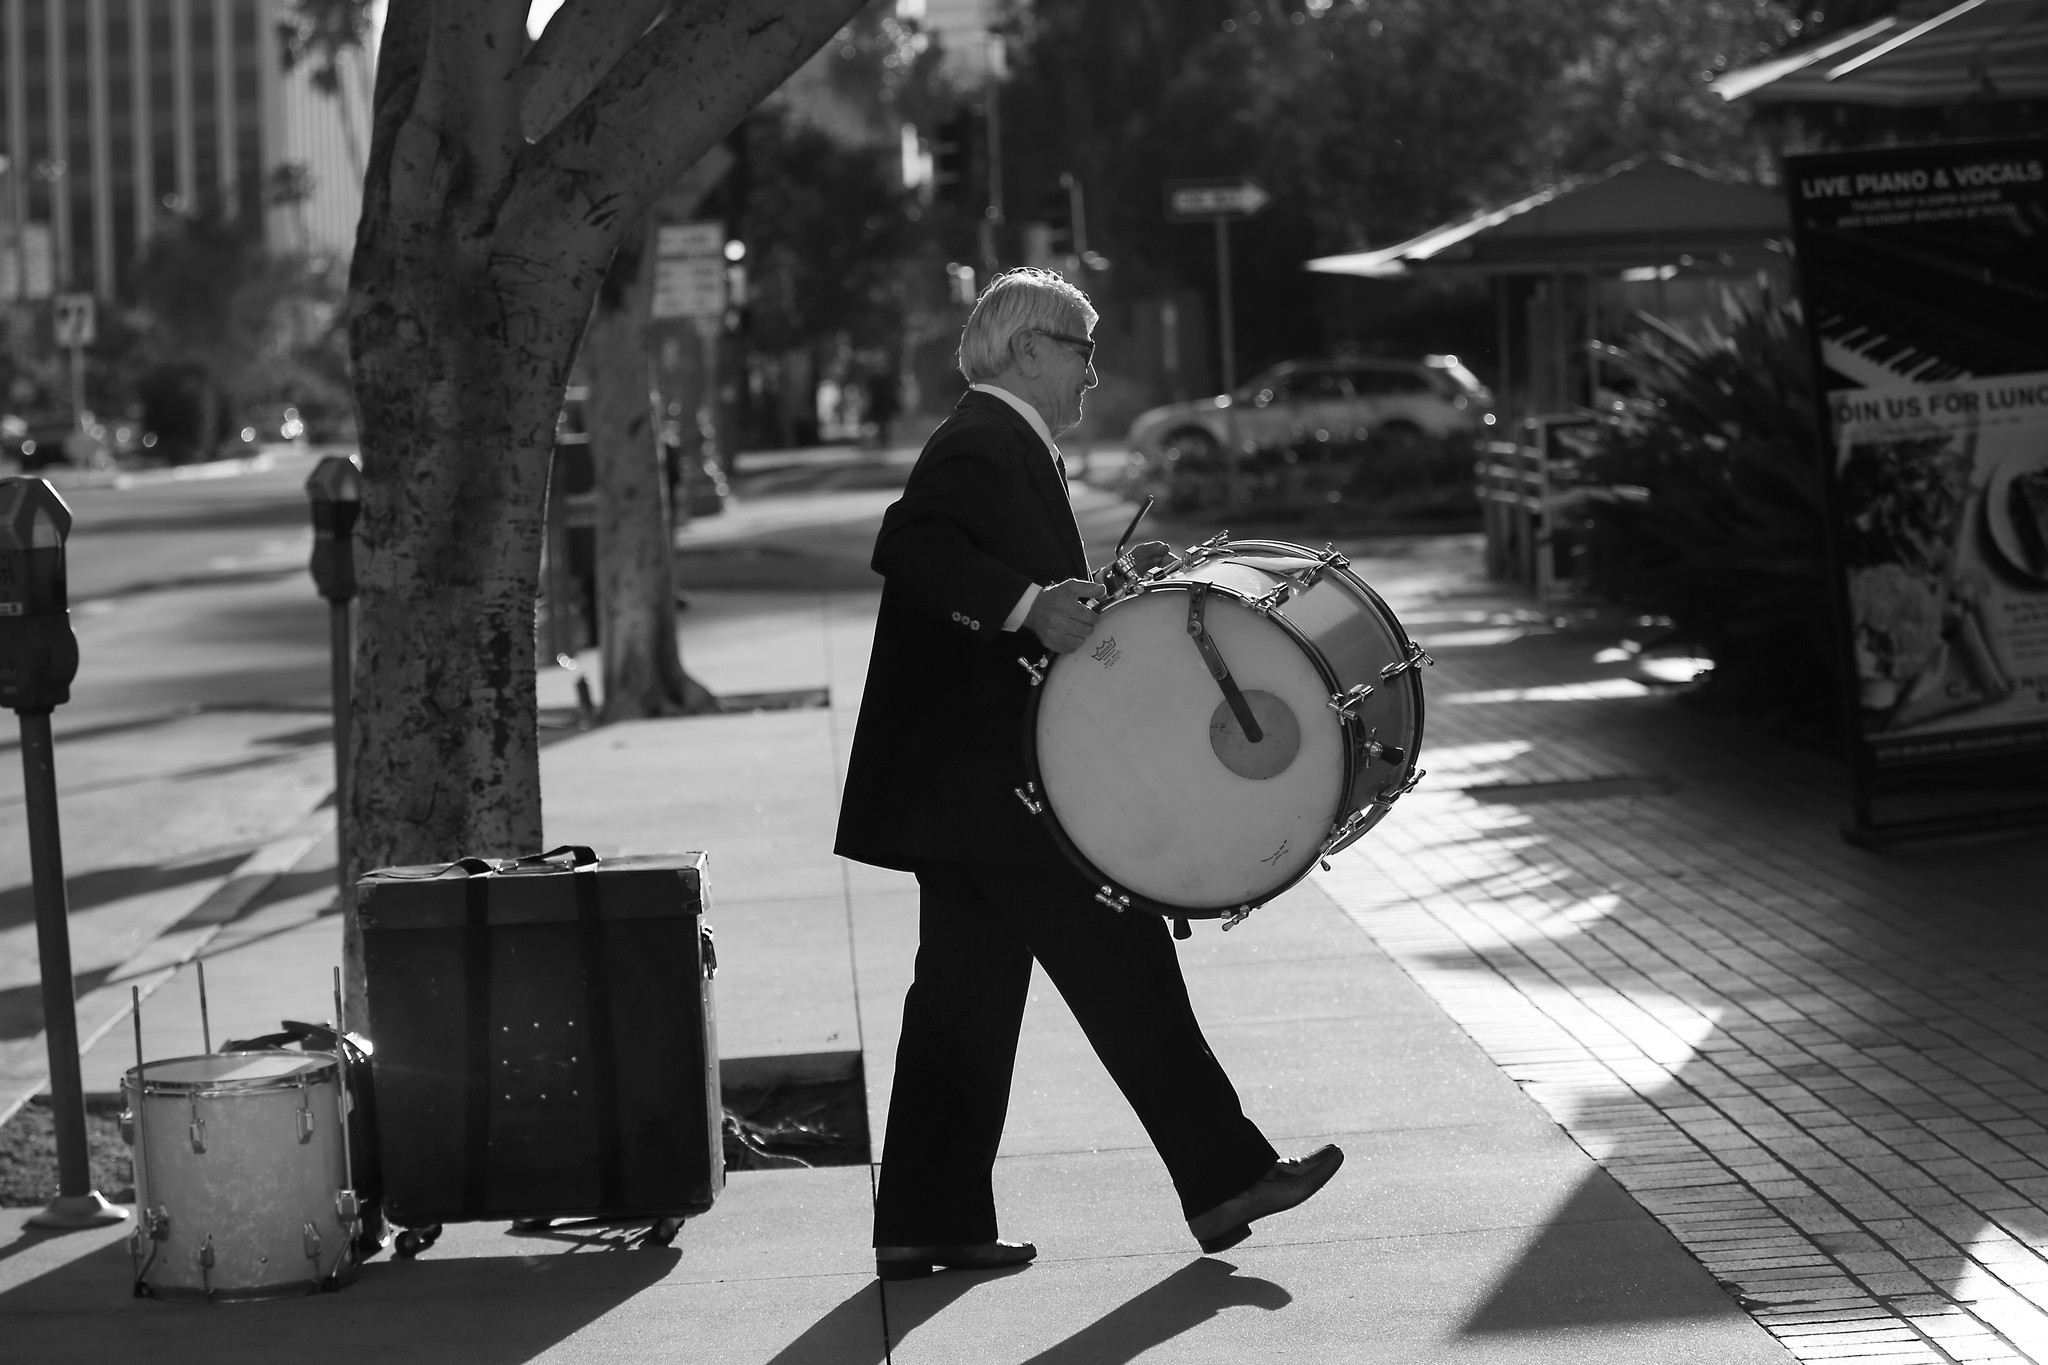 Wearing a suit and tie Steve Hideg, 85, carries his drums into Callender's Grill before his gig in L